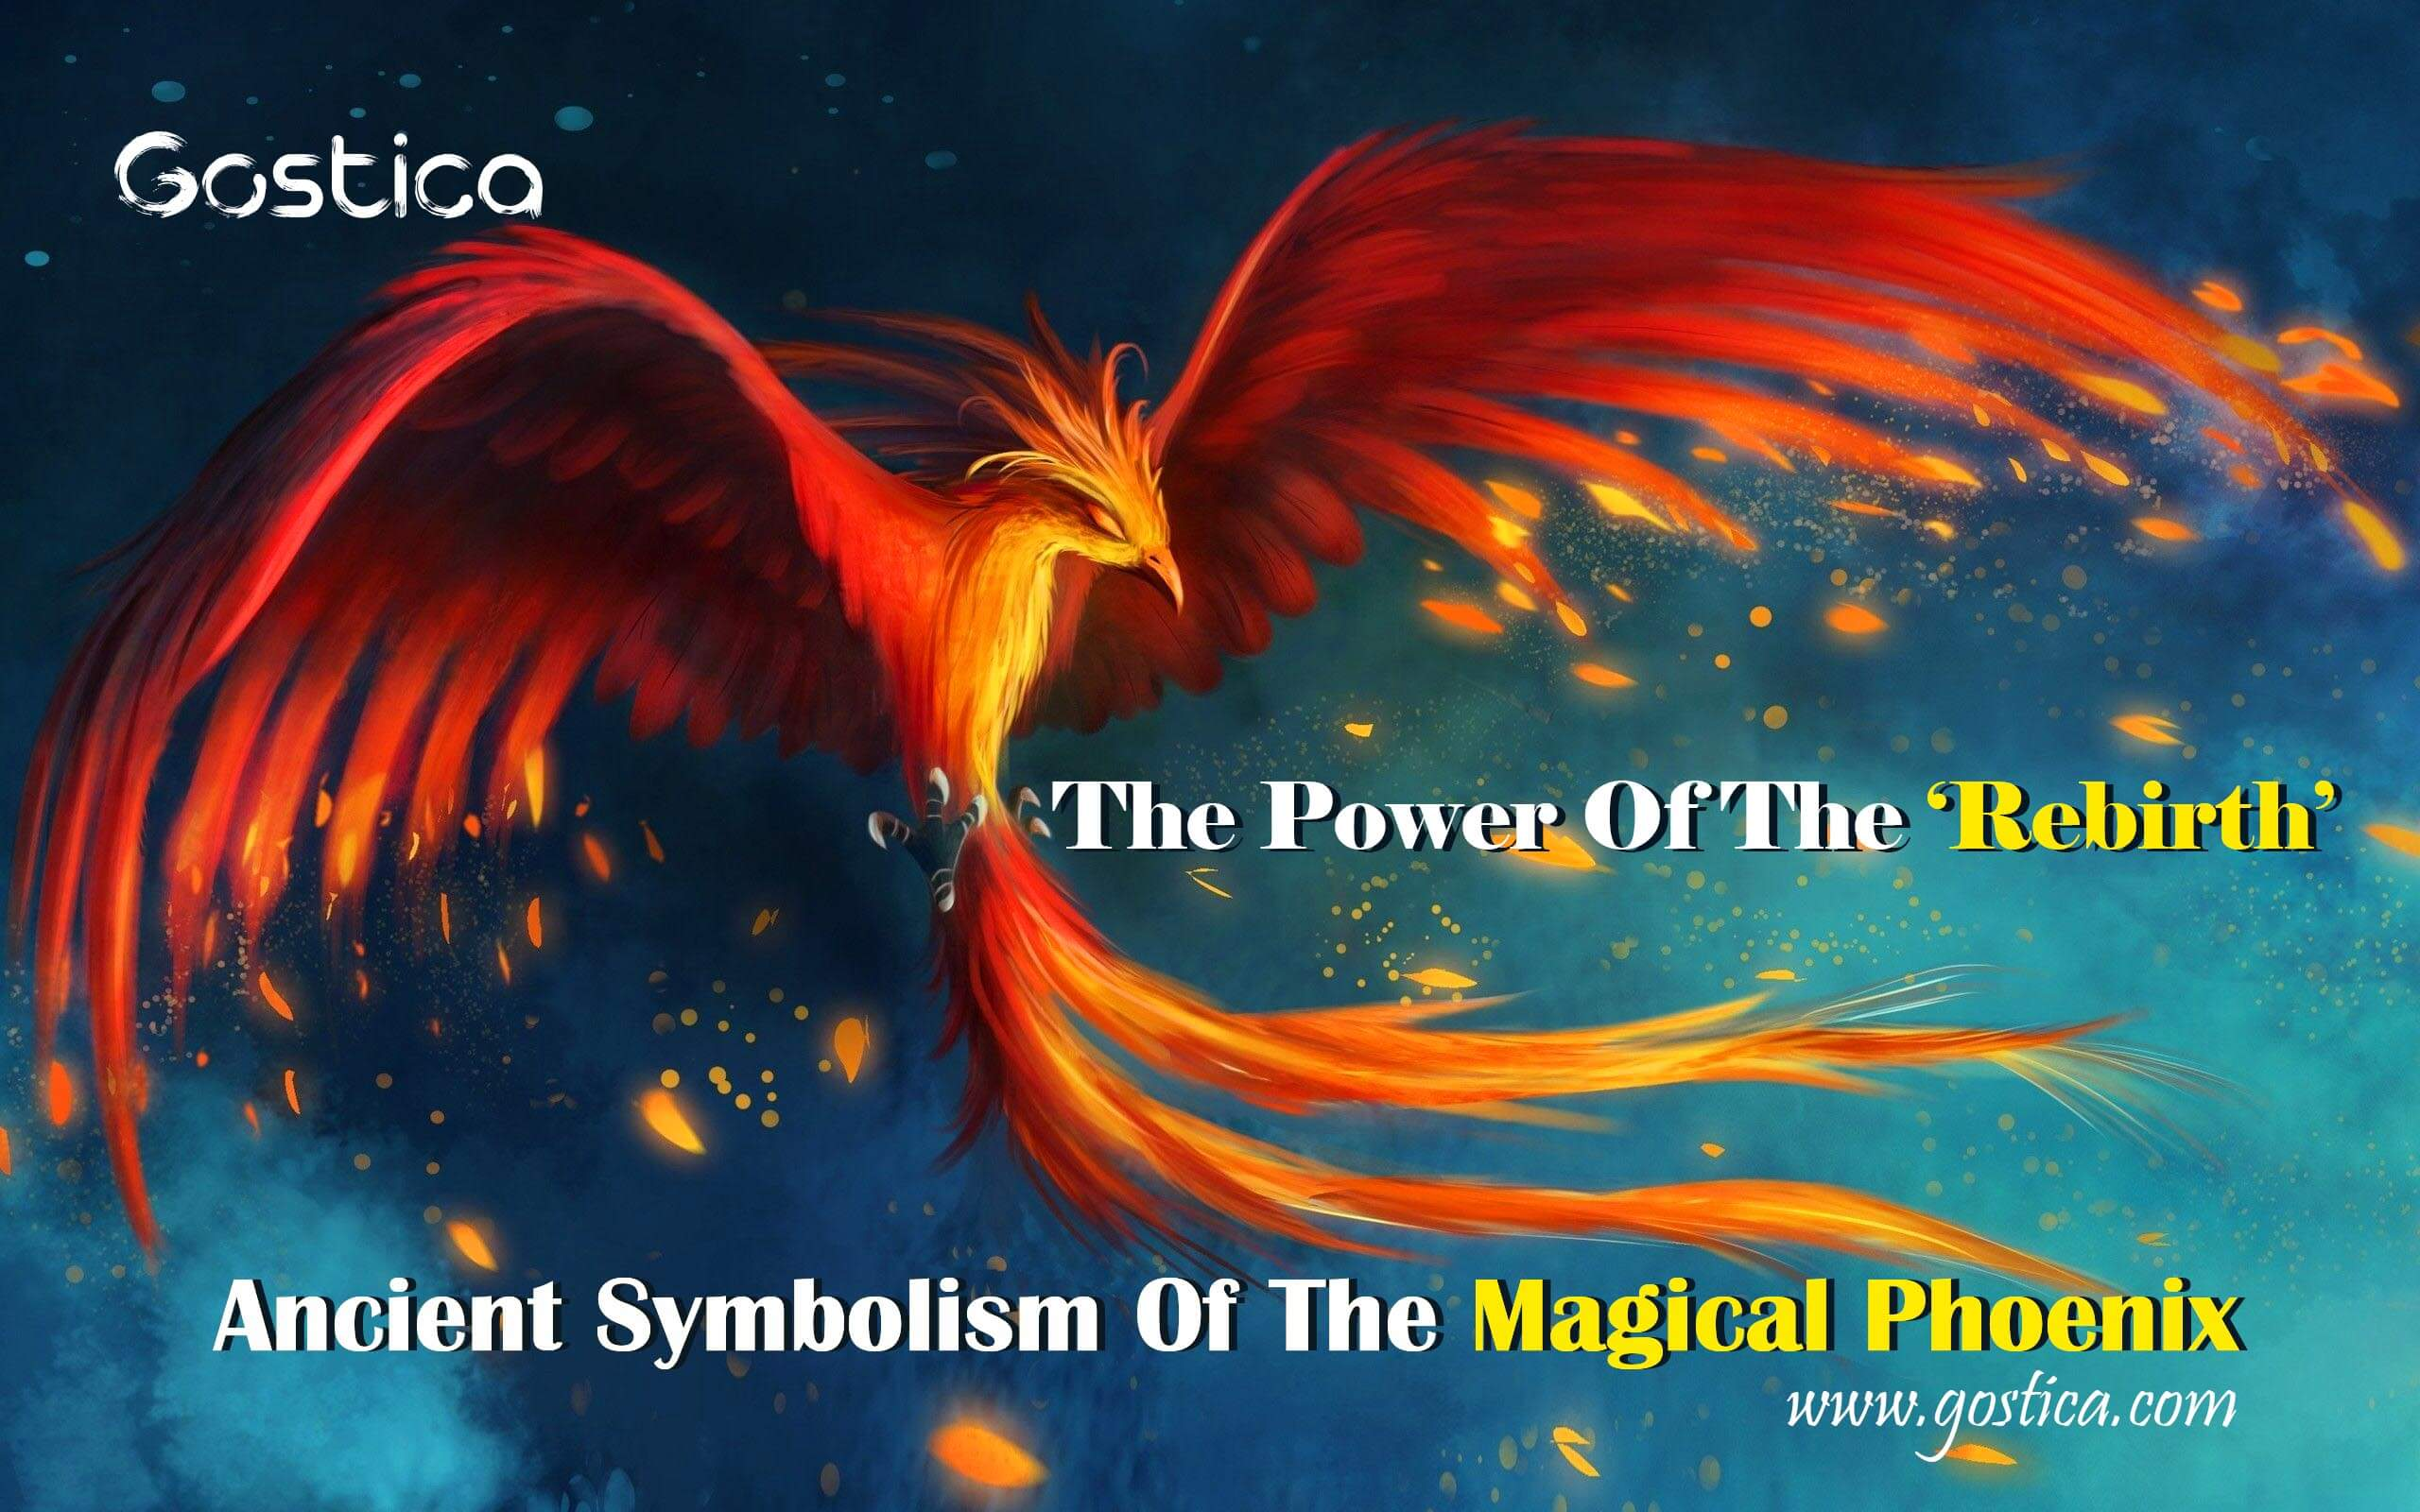 The Power Of The Rebirth Ancient Symbolism Of The Magical Phoenix